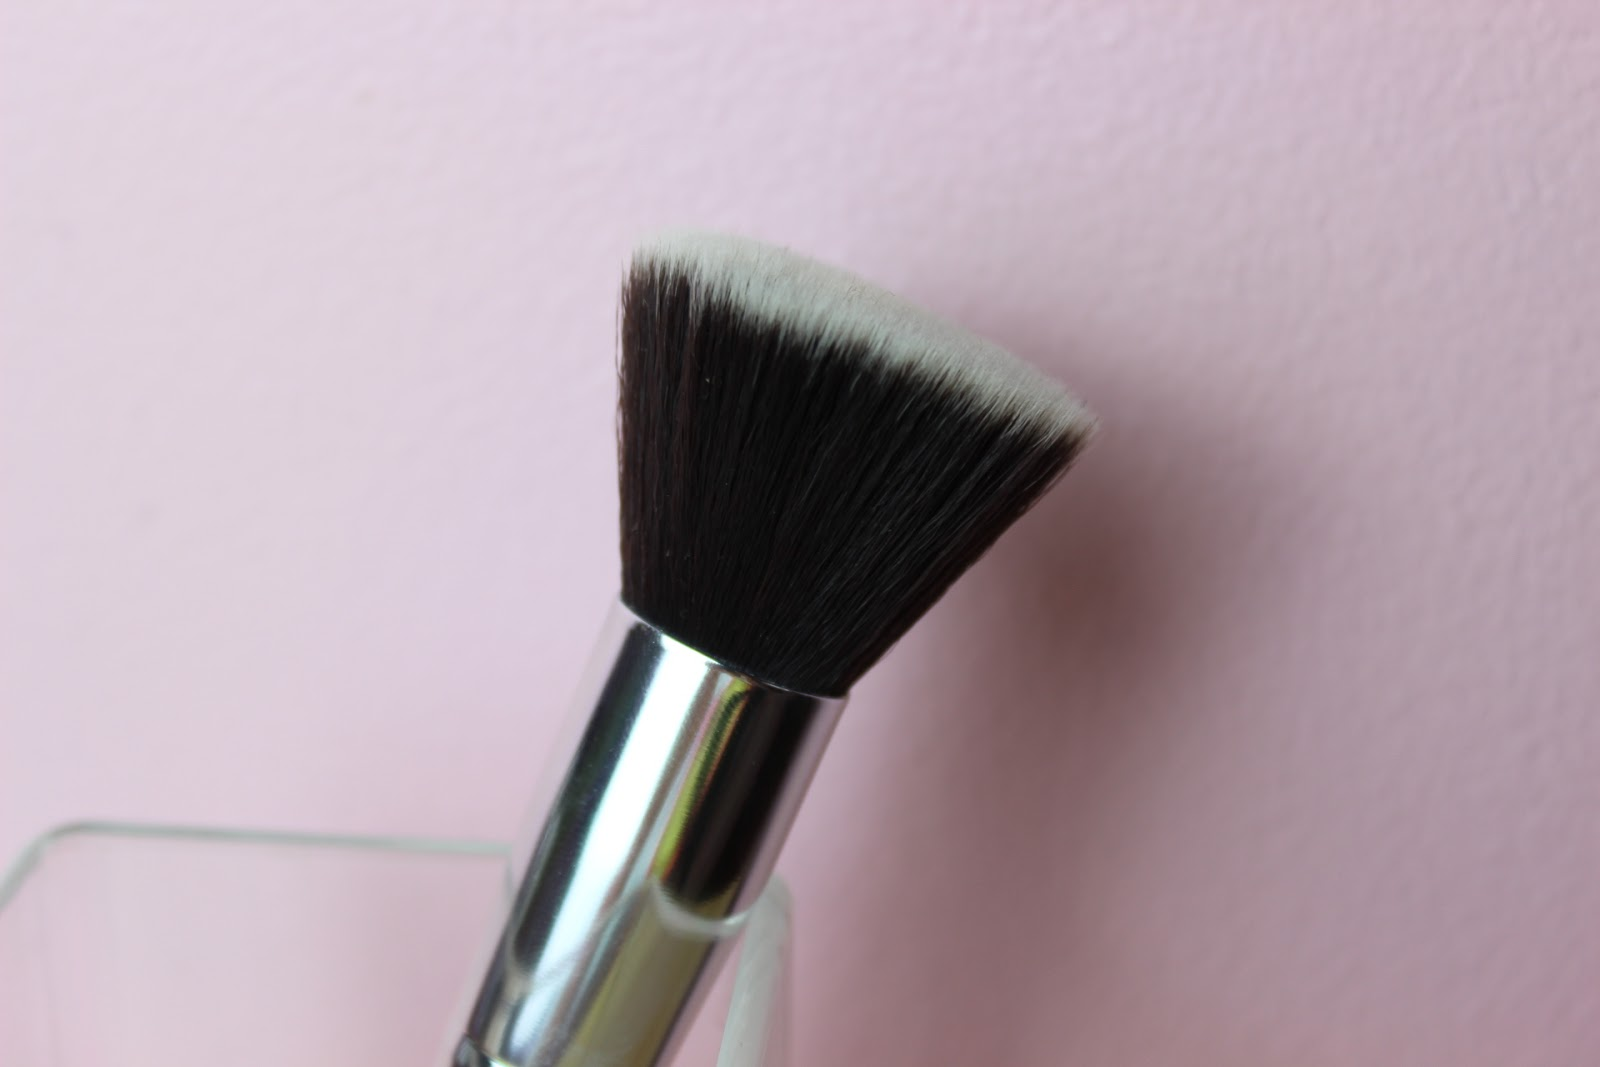 A affordable pink makeup foundation brush